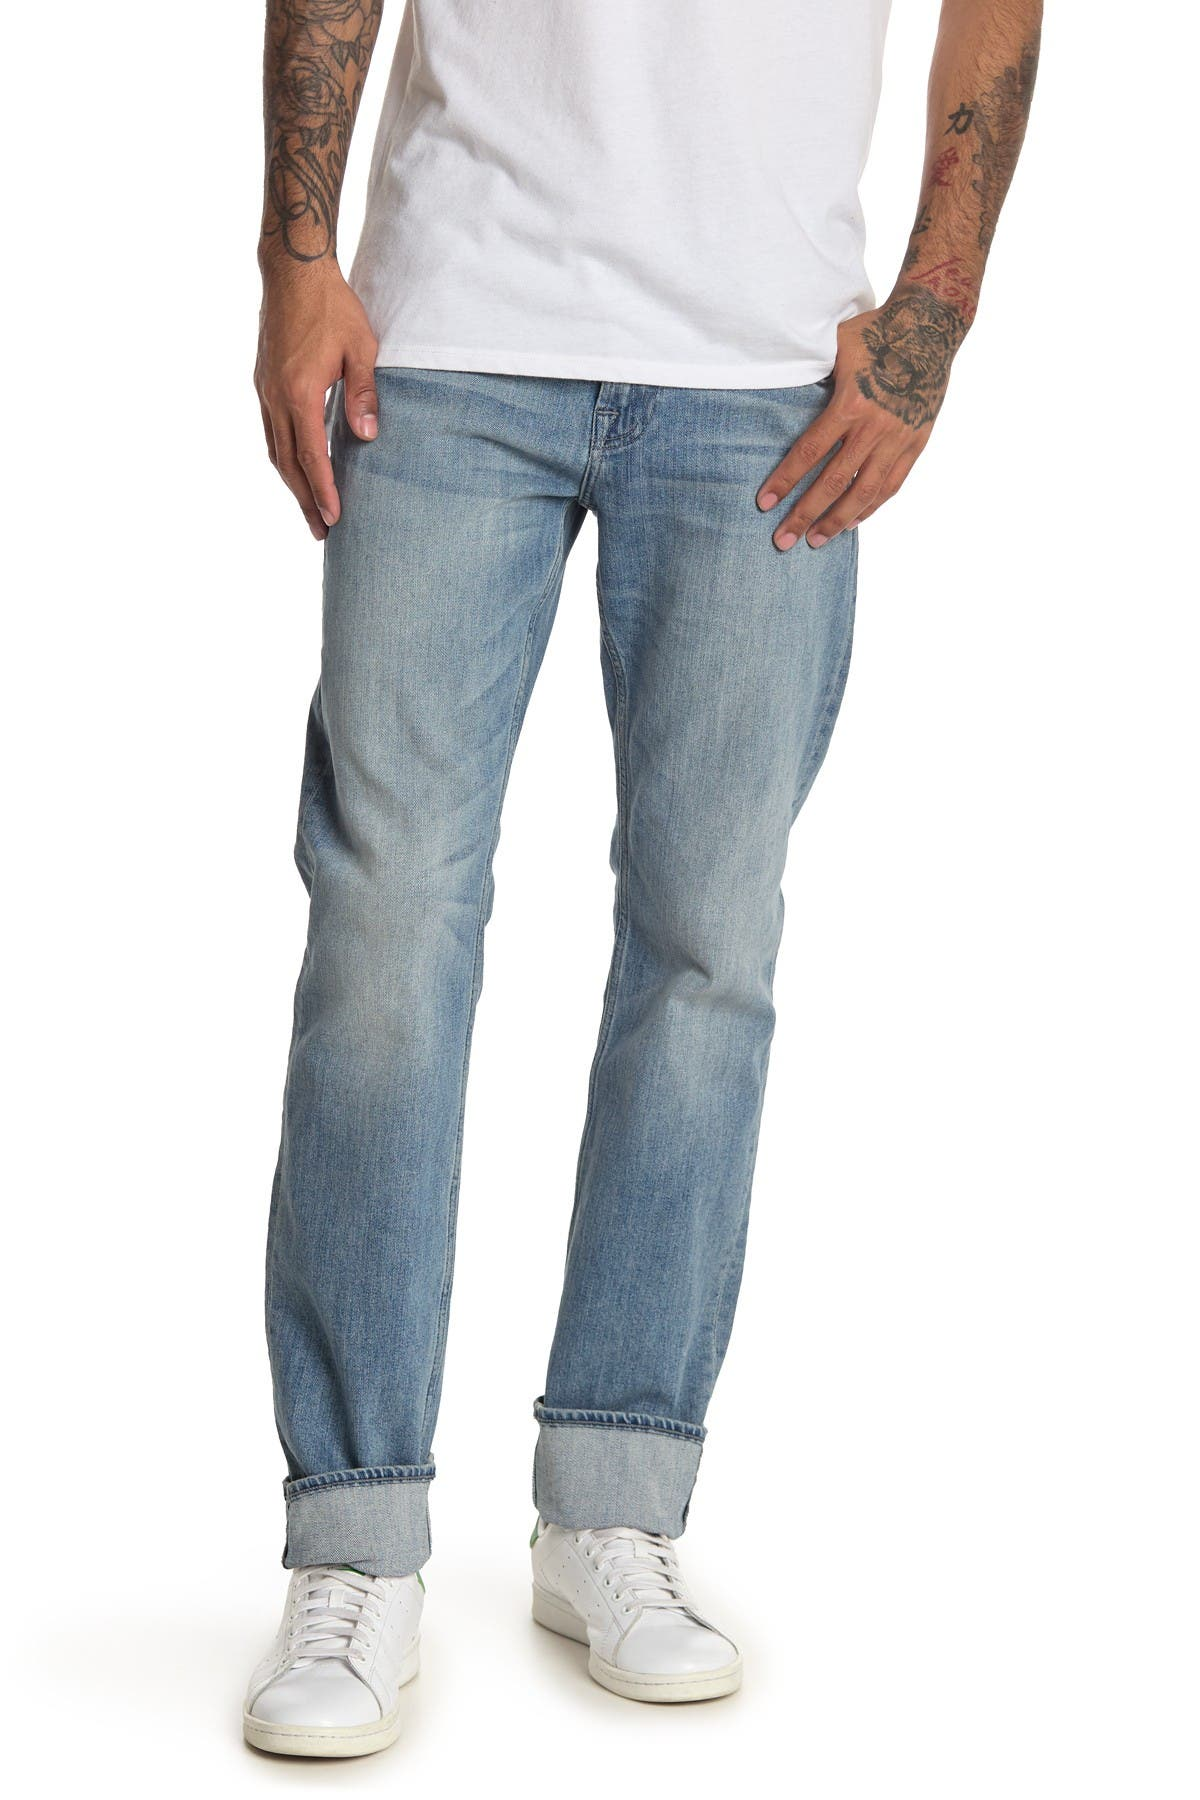 7 For All Mankind STRAIGHT LEG SLIM FIT JEANS